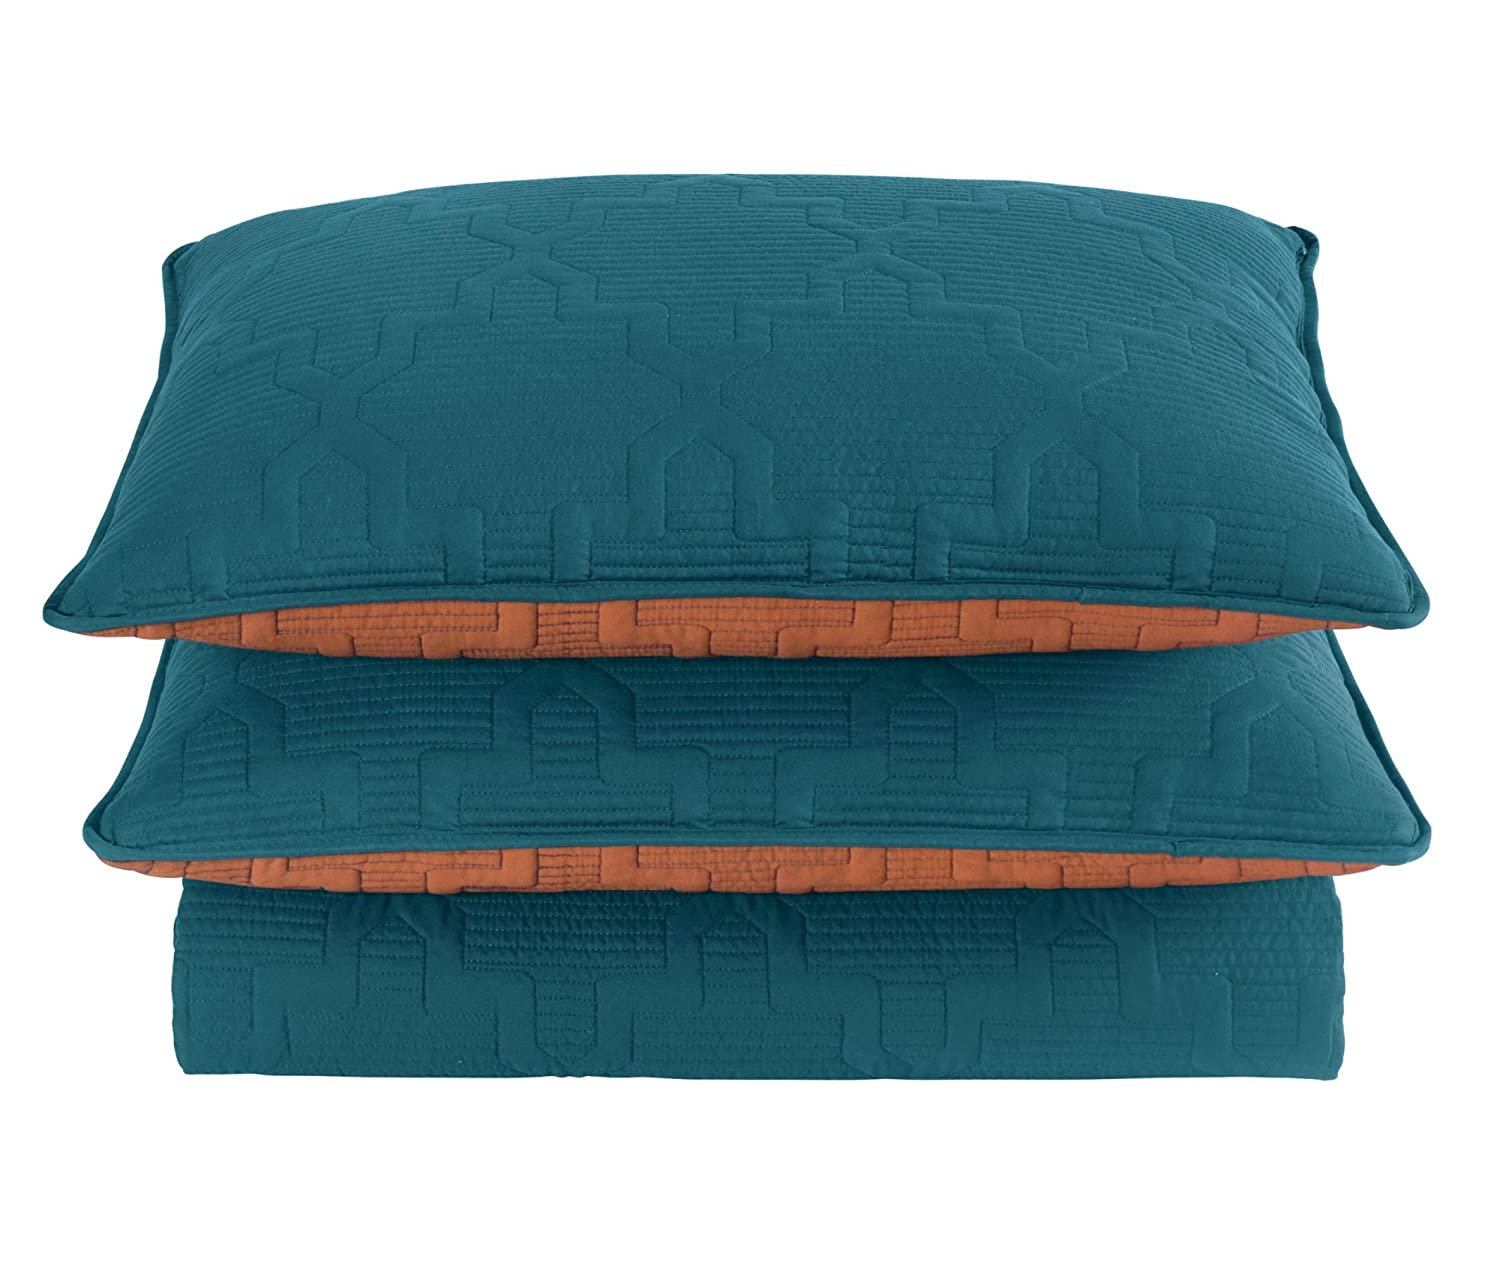 Brielle Casablanca, Reversible King Quilt Set, Spice/Teal